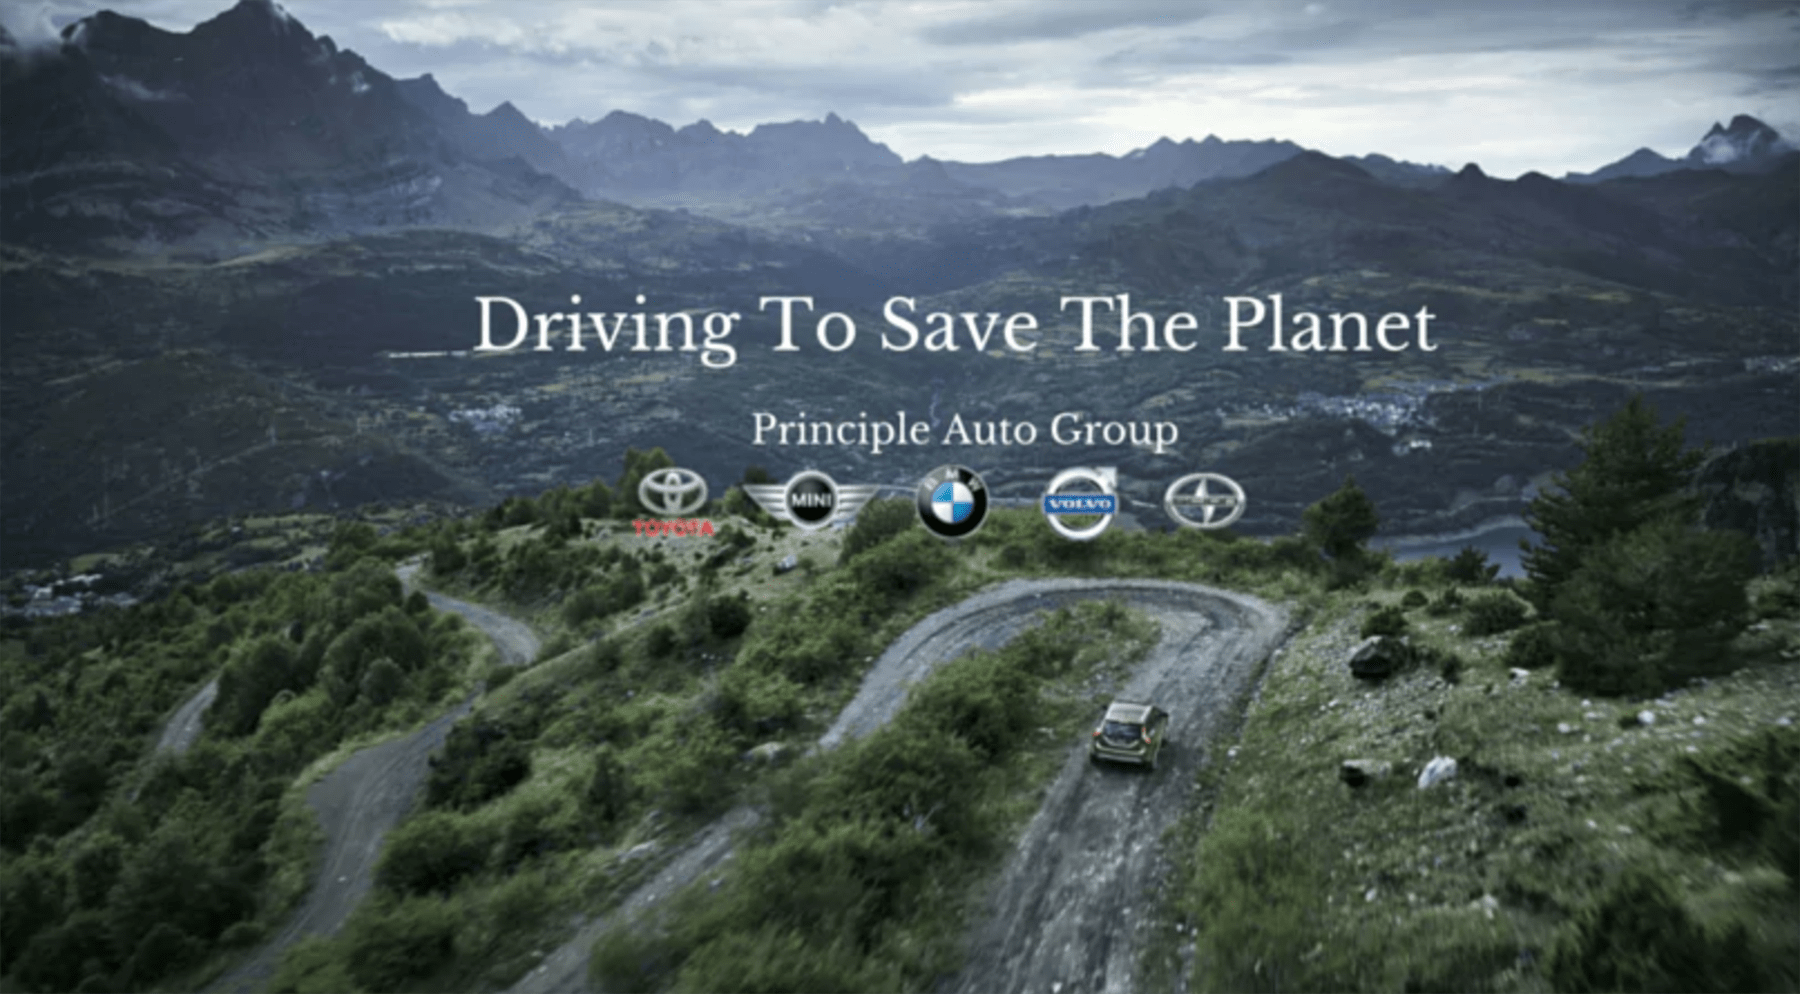 Driving to Save the Planet